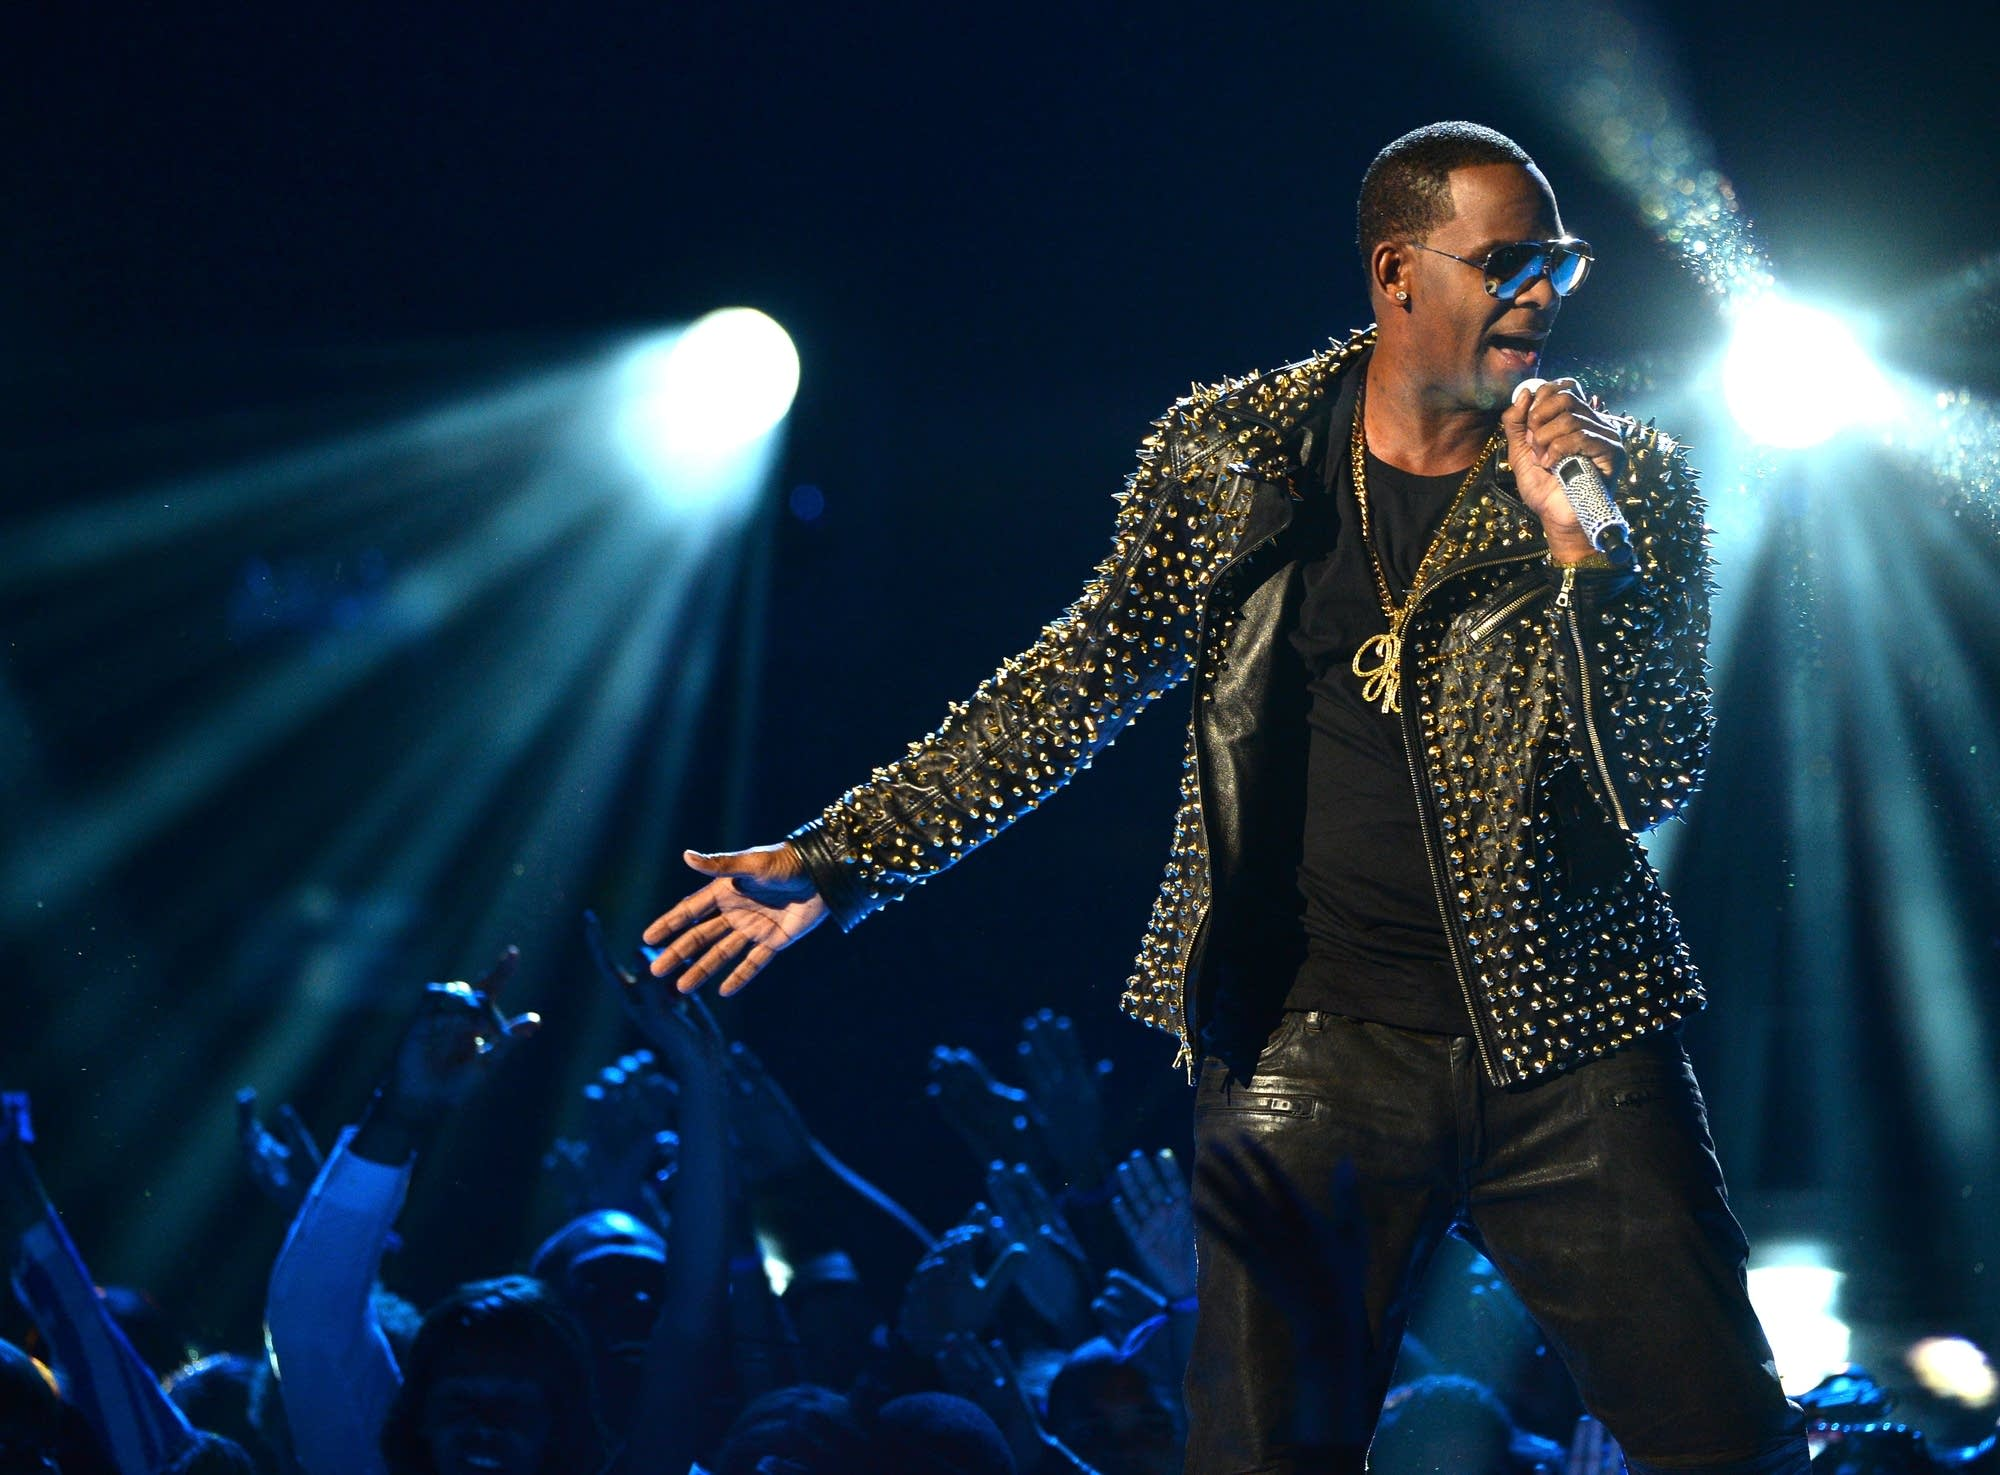 R. Kelly performs at the 2013 BET Awards